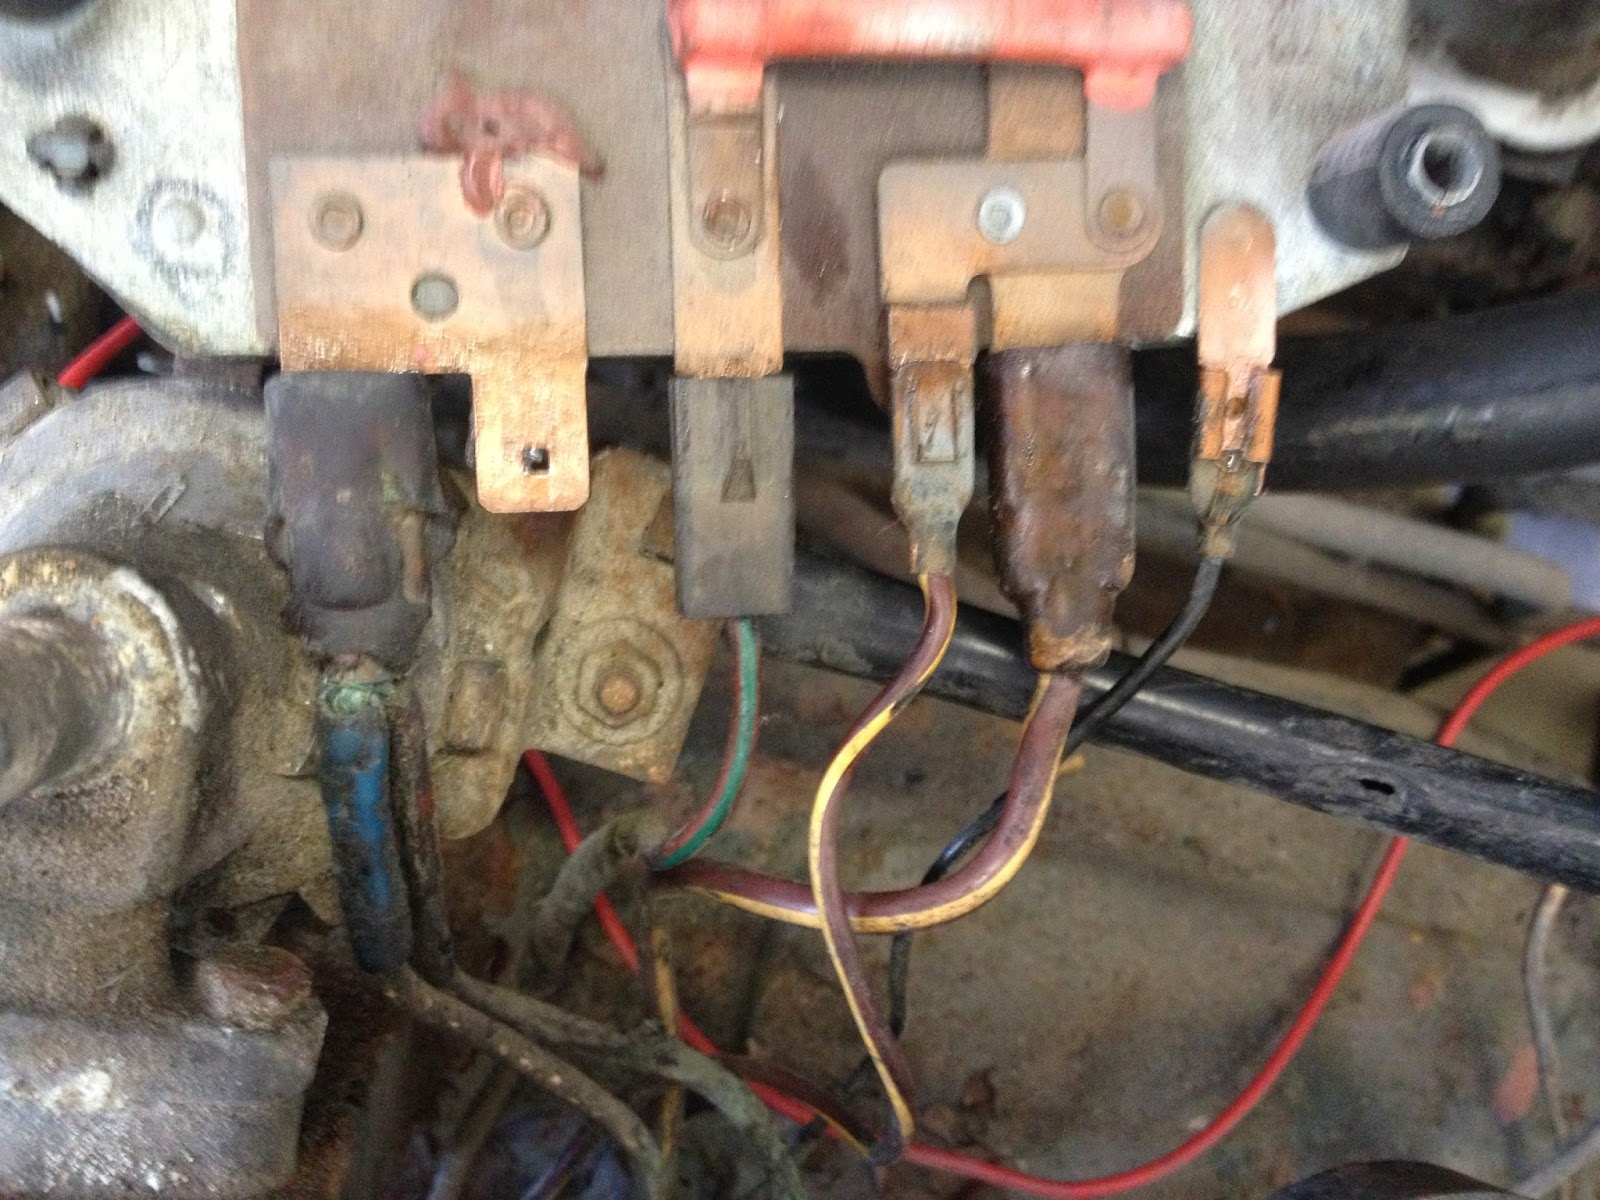 IMG_1726 1969 triumph spitfire mk3 project wiring woes here we go again